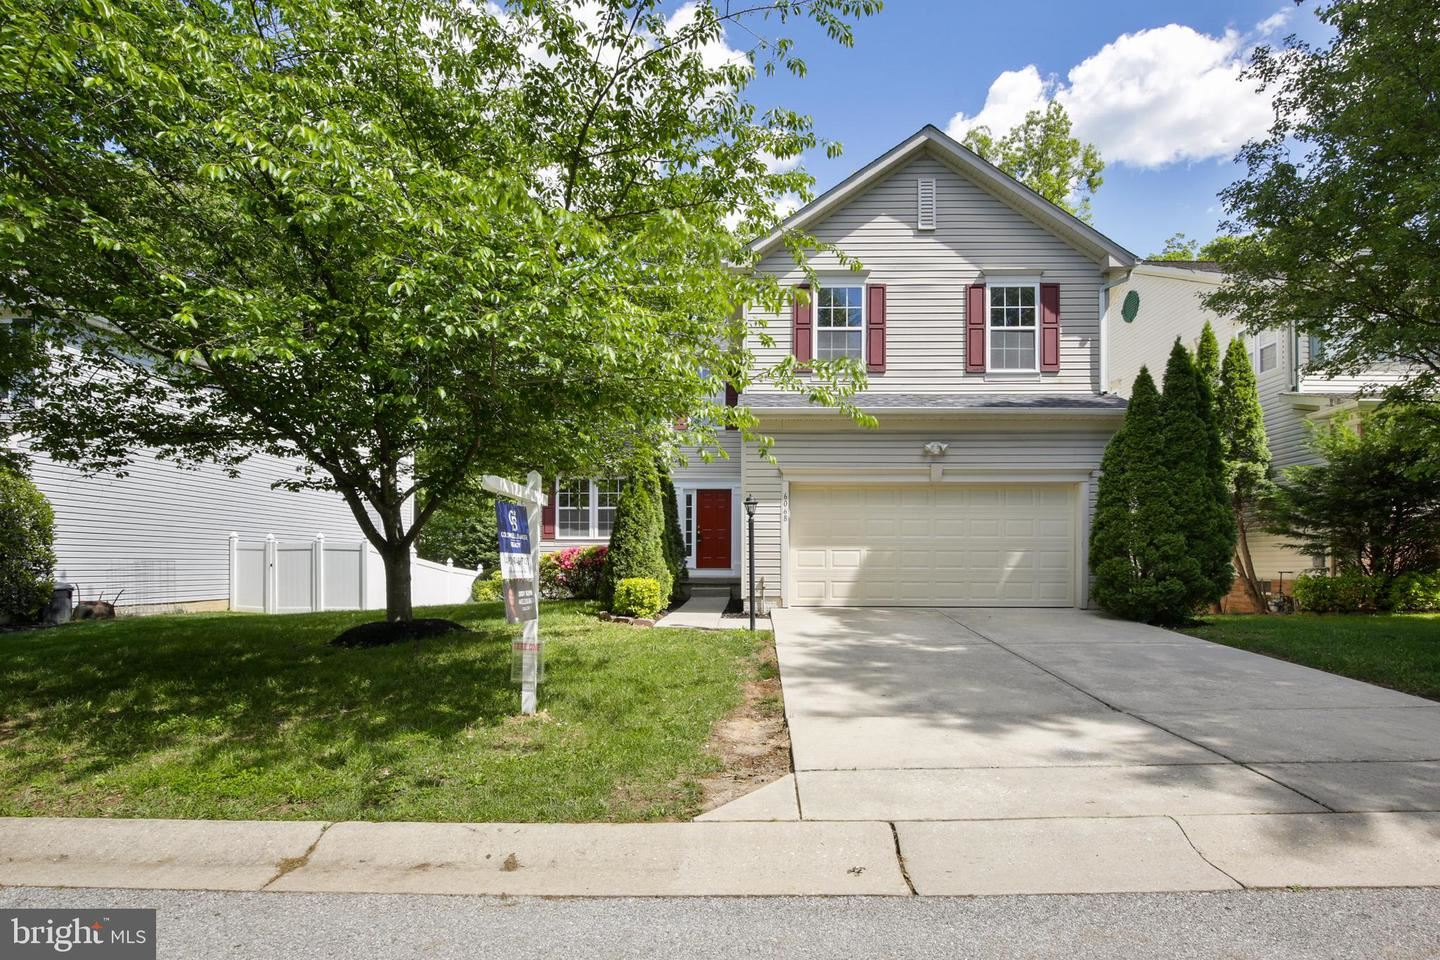 6068 CHARLES EDWARD TER, Columbia, MD 21045 - MLS#: MDHW293136